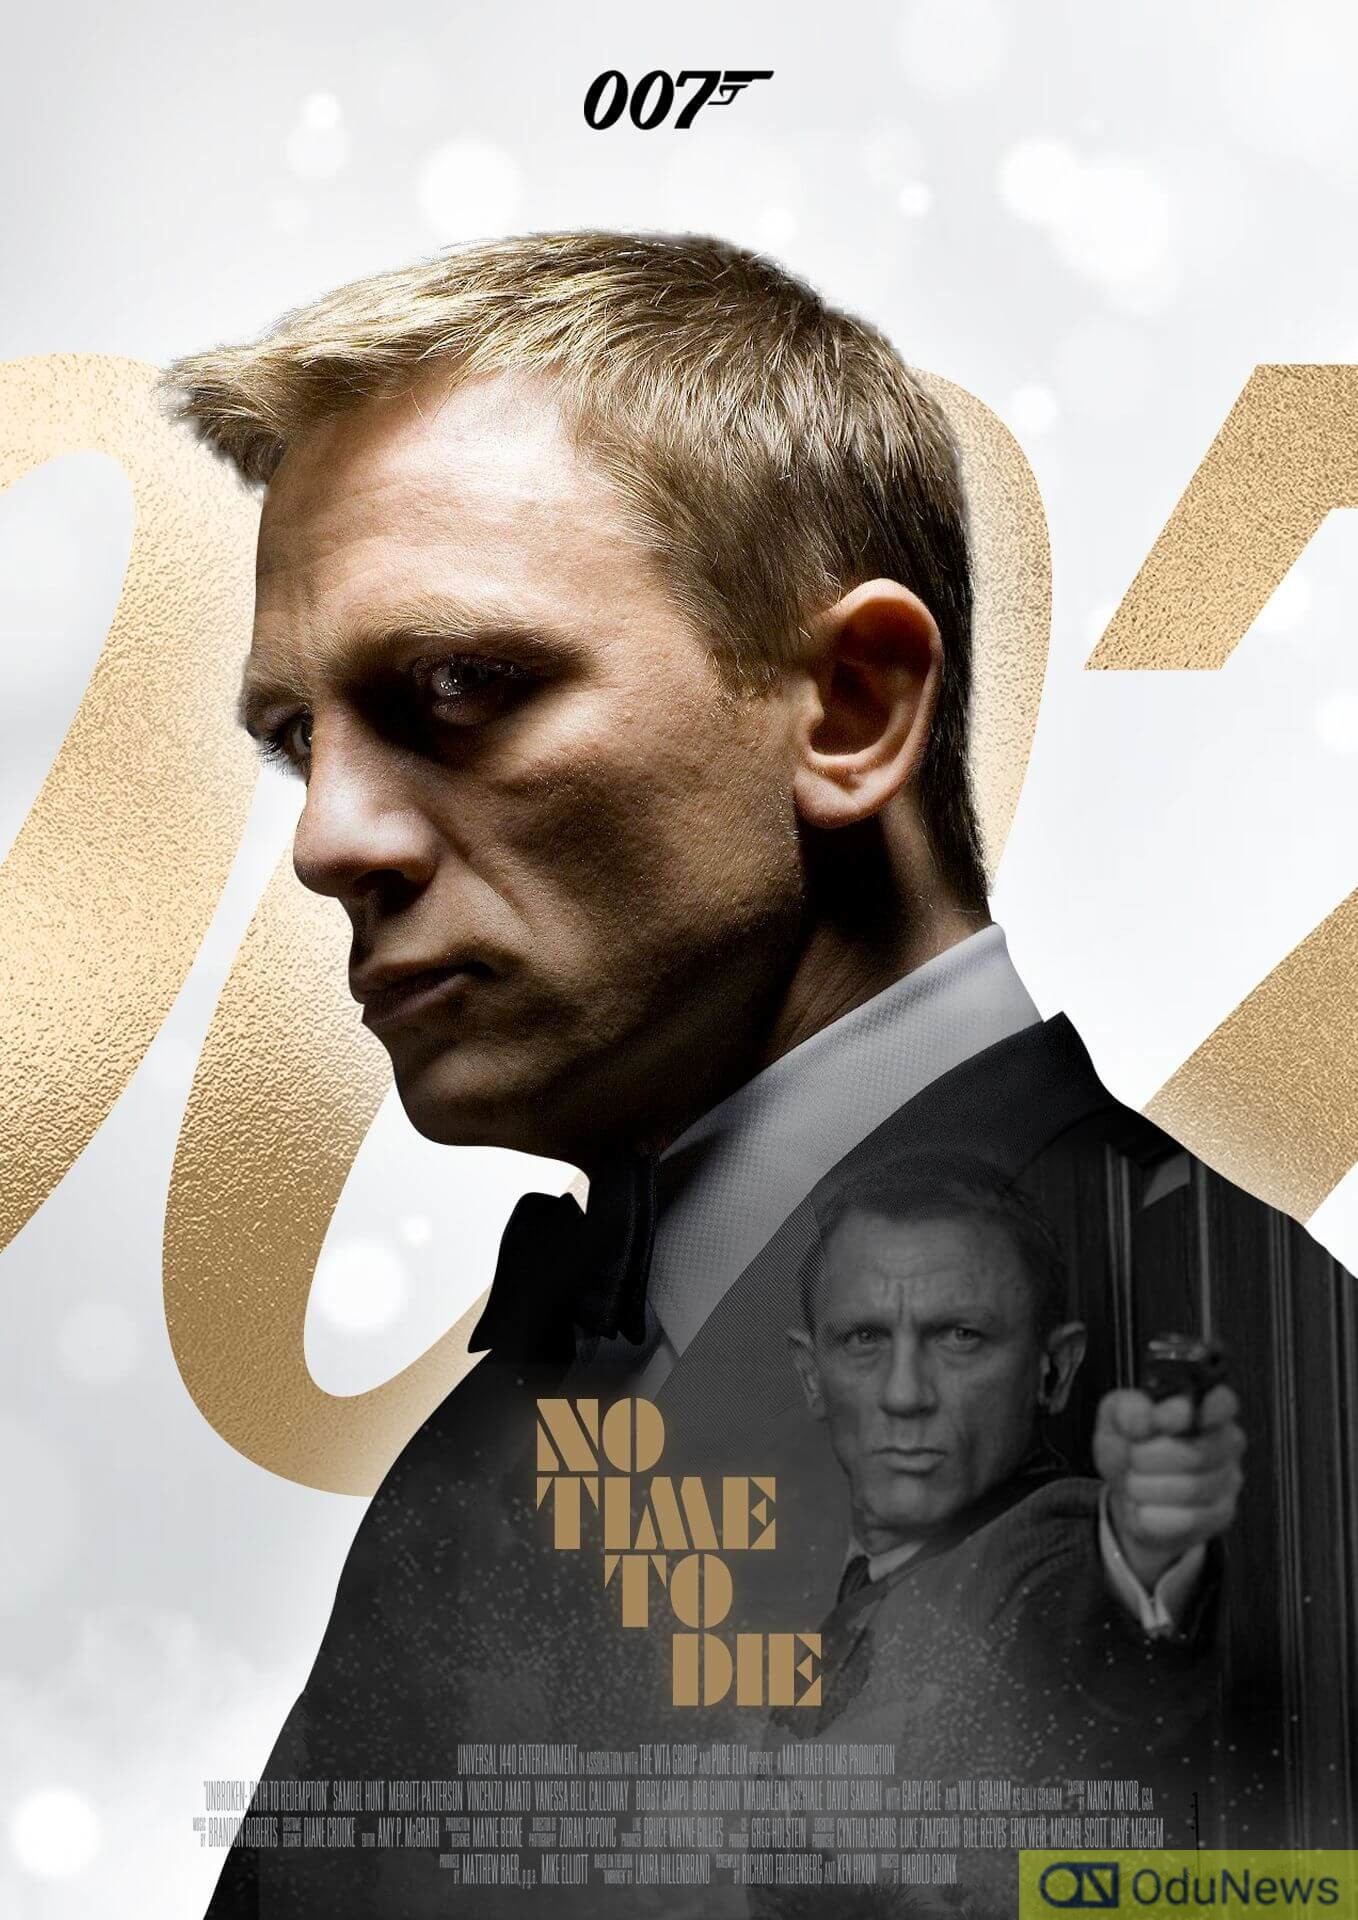 No Time To Die marks Daniel Craig's last outing as the spy James Bond